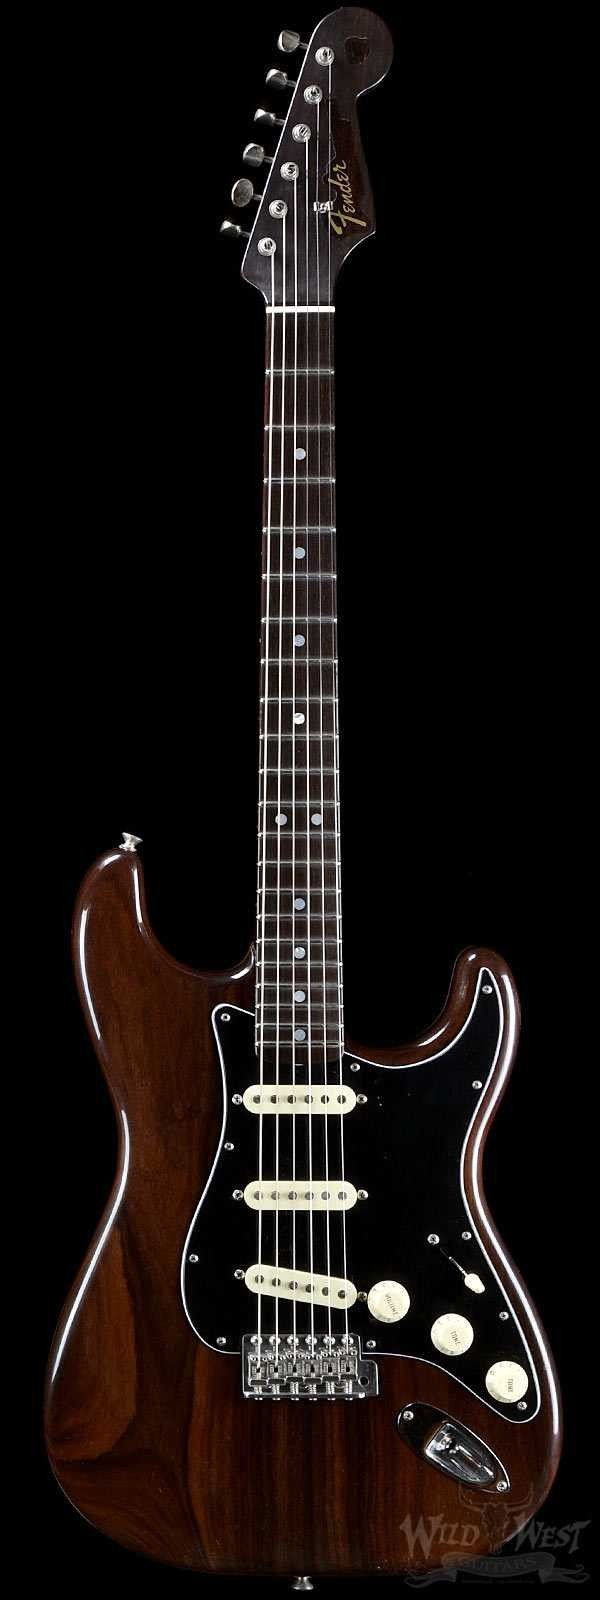 pin by dustin williams on guitars guitarra stratocaster guitarra genial guitarras fender. Black Bedroom Furniture Sets. Home Design Ideas